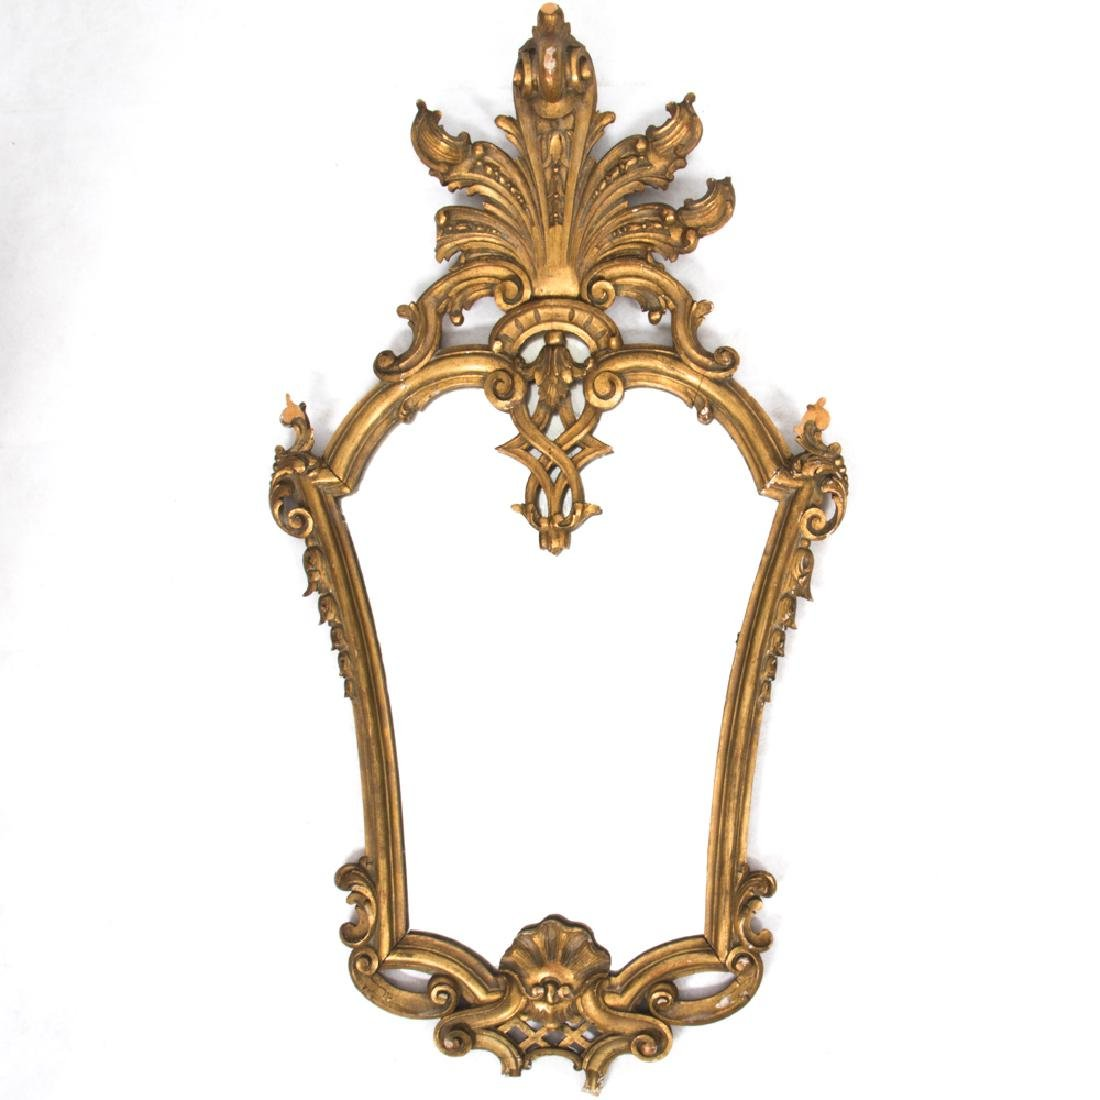 A Rococo Style Carved Gilt Framed Mirror, 20th Century.